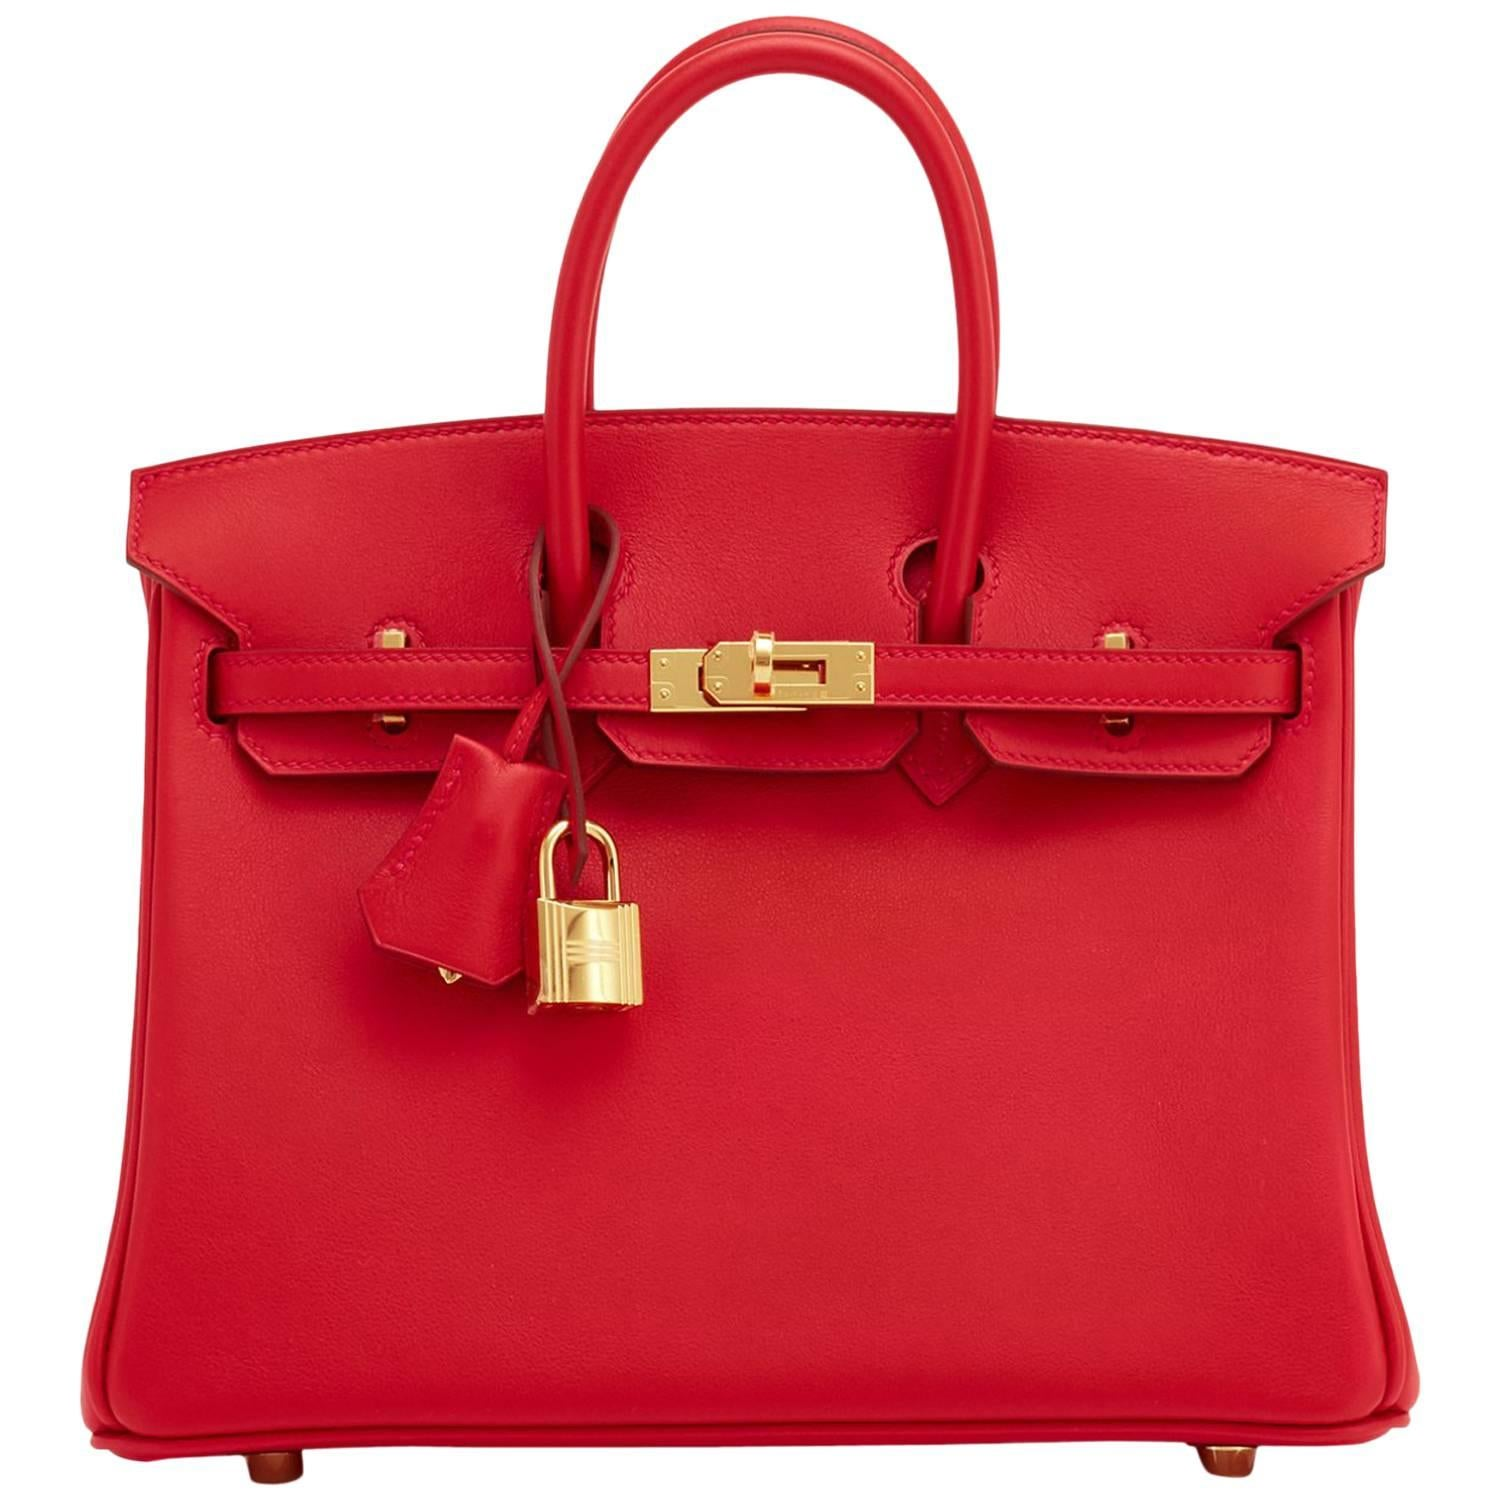 Hermes Vermillion Lipstick Red 25cm Swift Gold Hardware Jewel Birkin Bag  For Sale at 1stdibs 06cf52fd924f